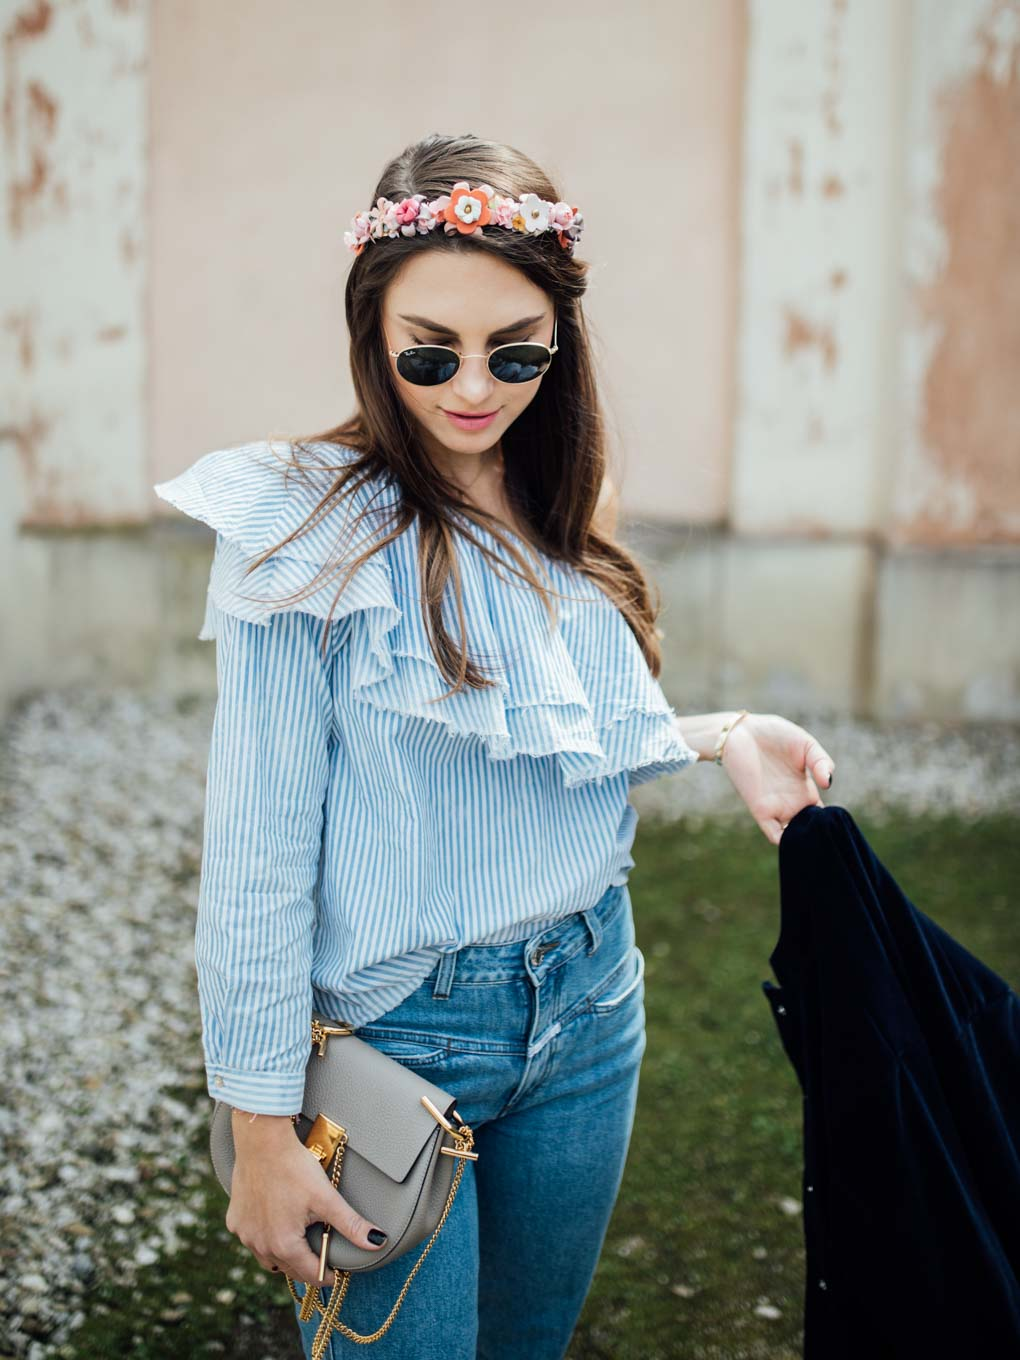 OUTFIT: Mayday - We Are Flowergirls x Marina Hoermanseder | #yourockmylife